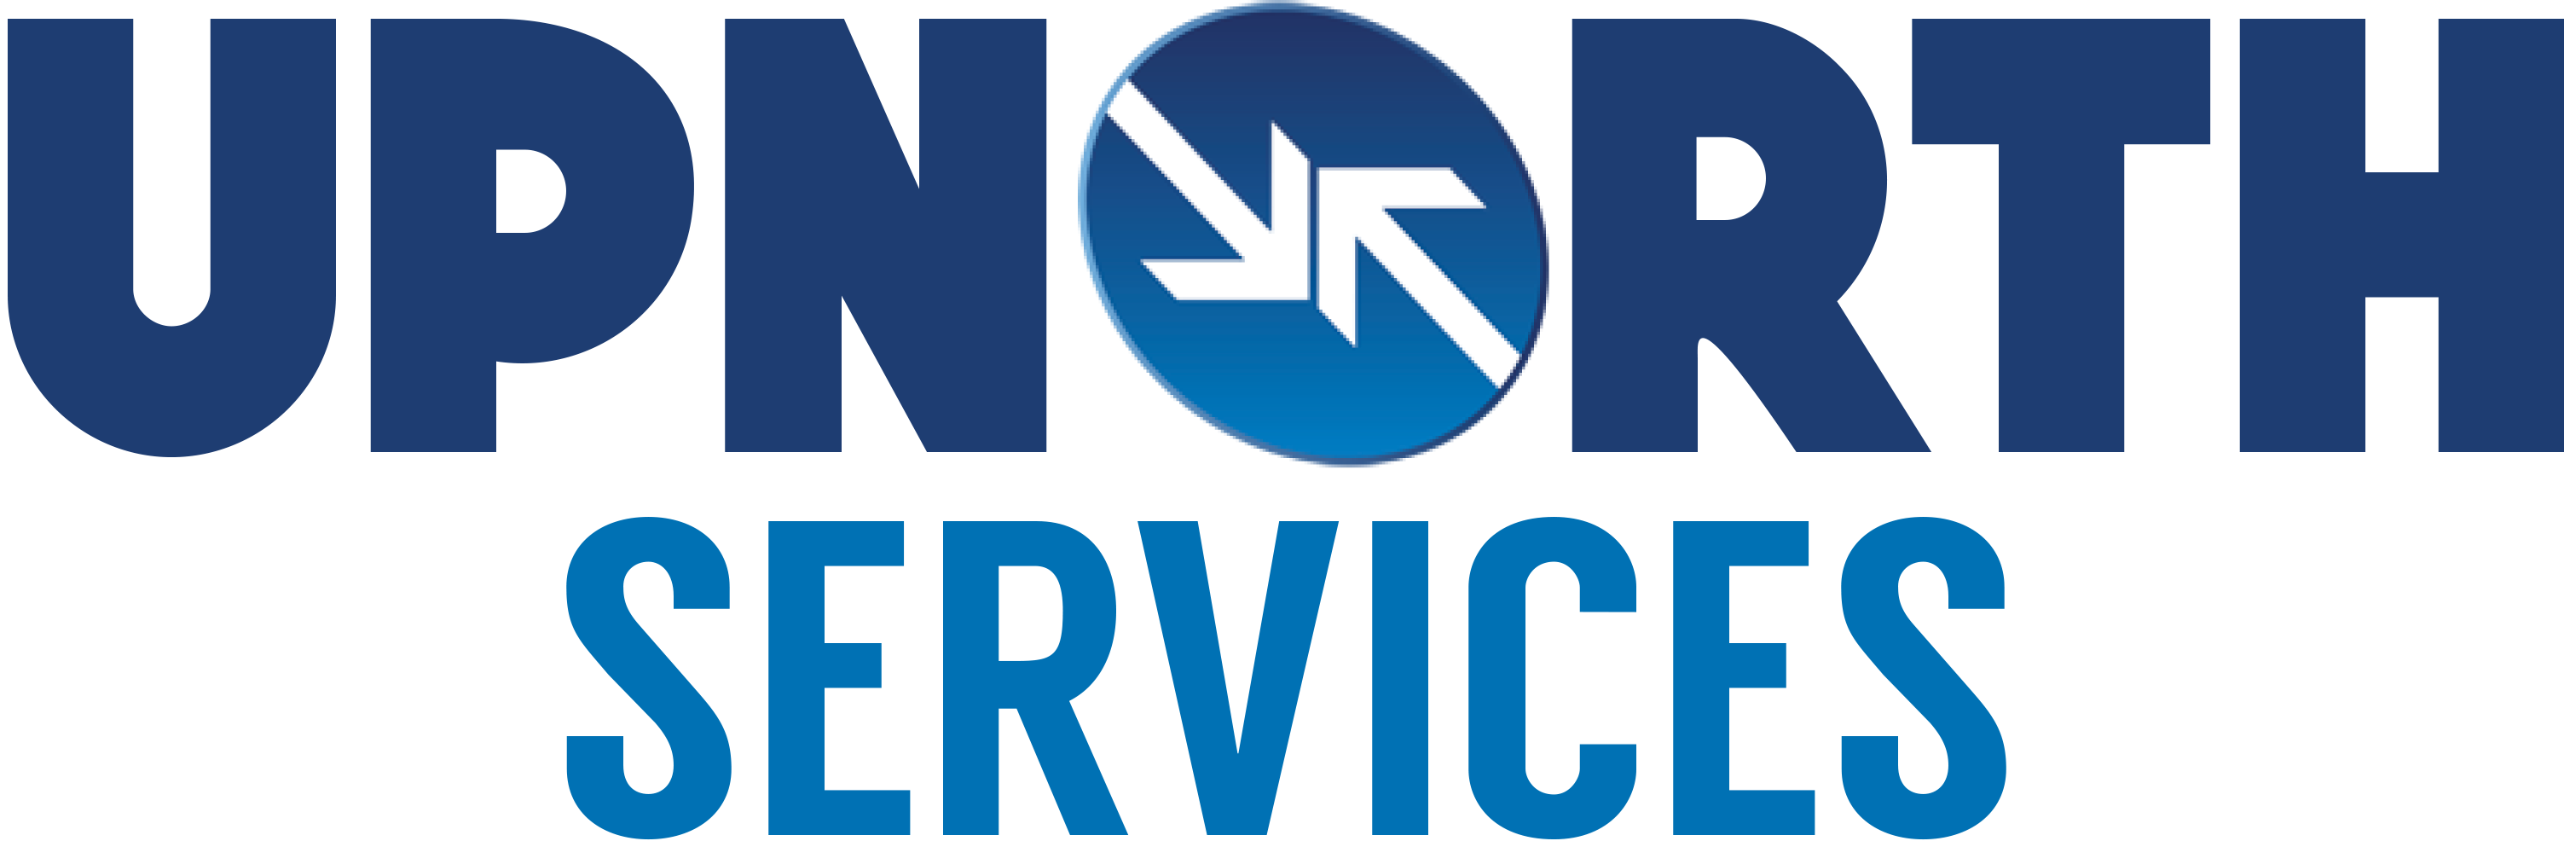 UpNorth Services: Approved Prison Packages Vendor